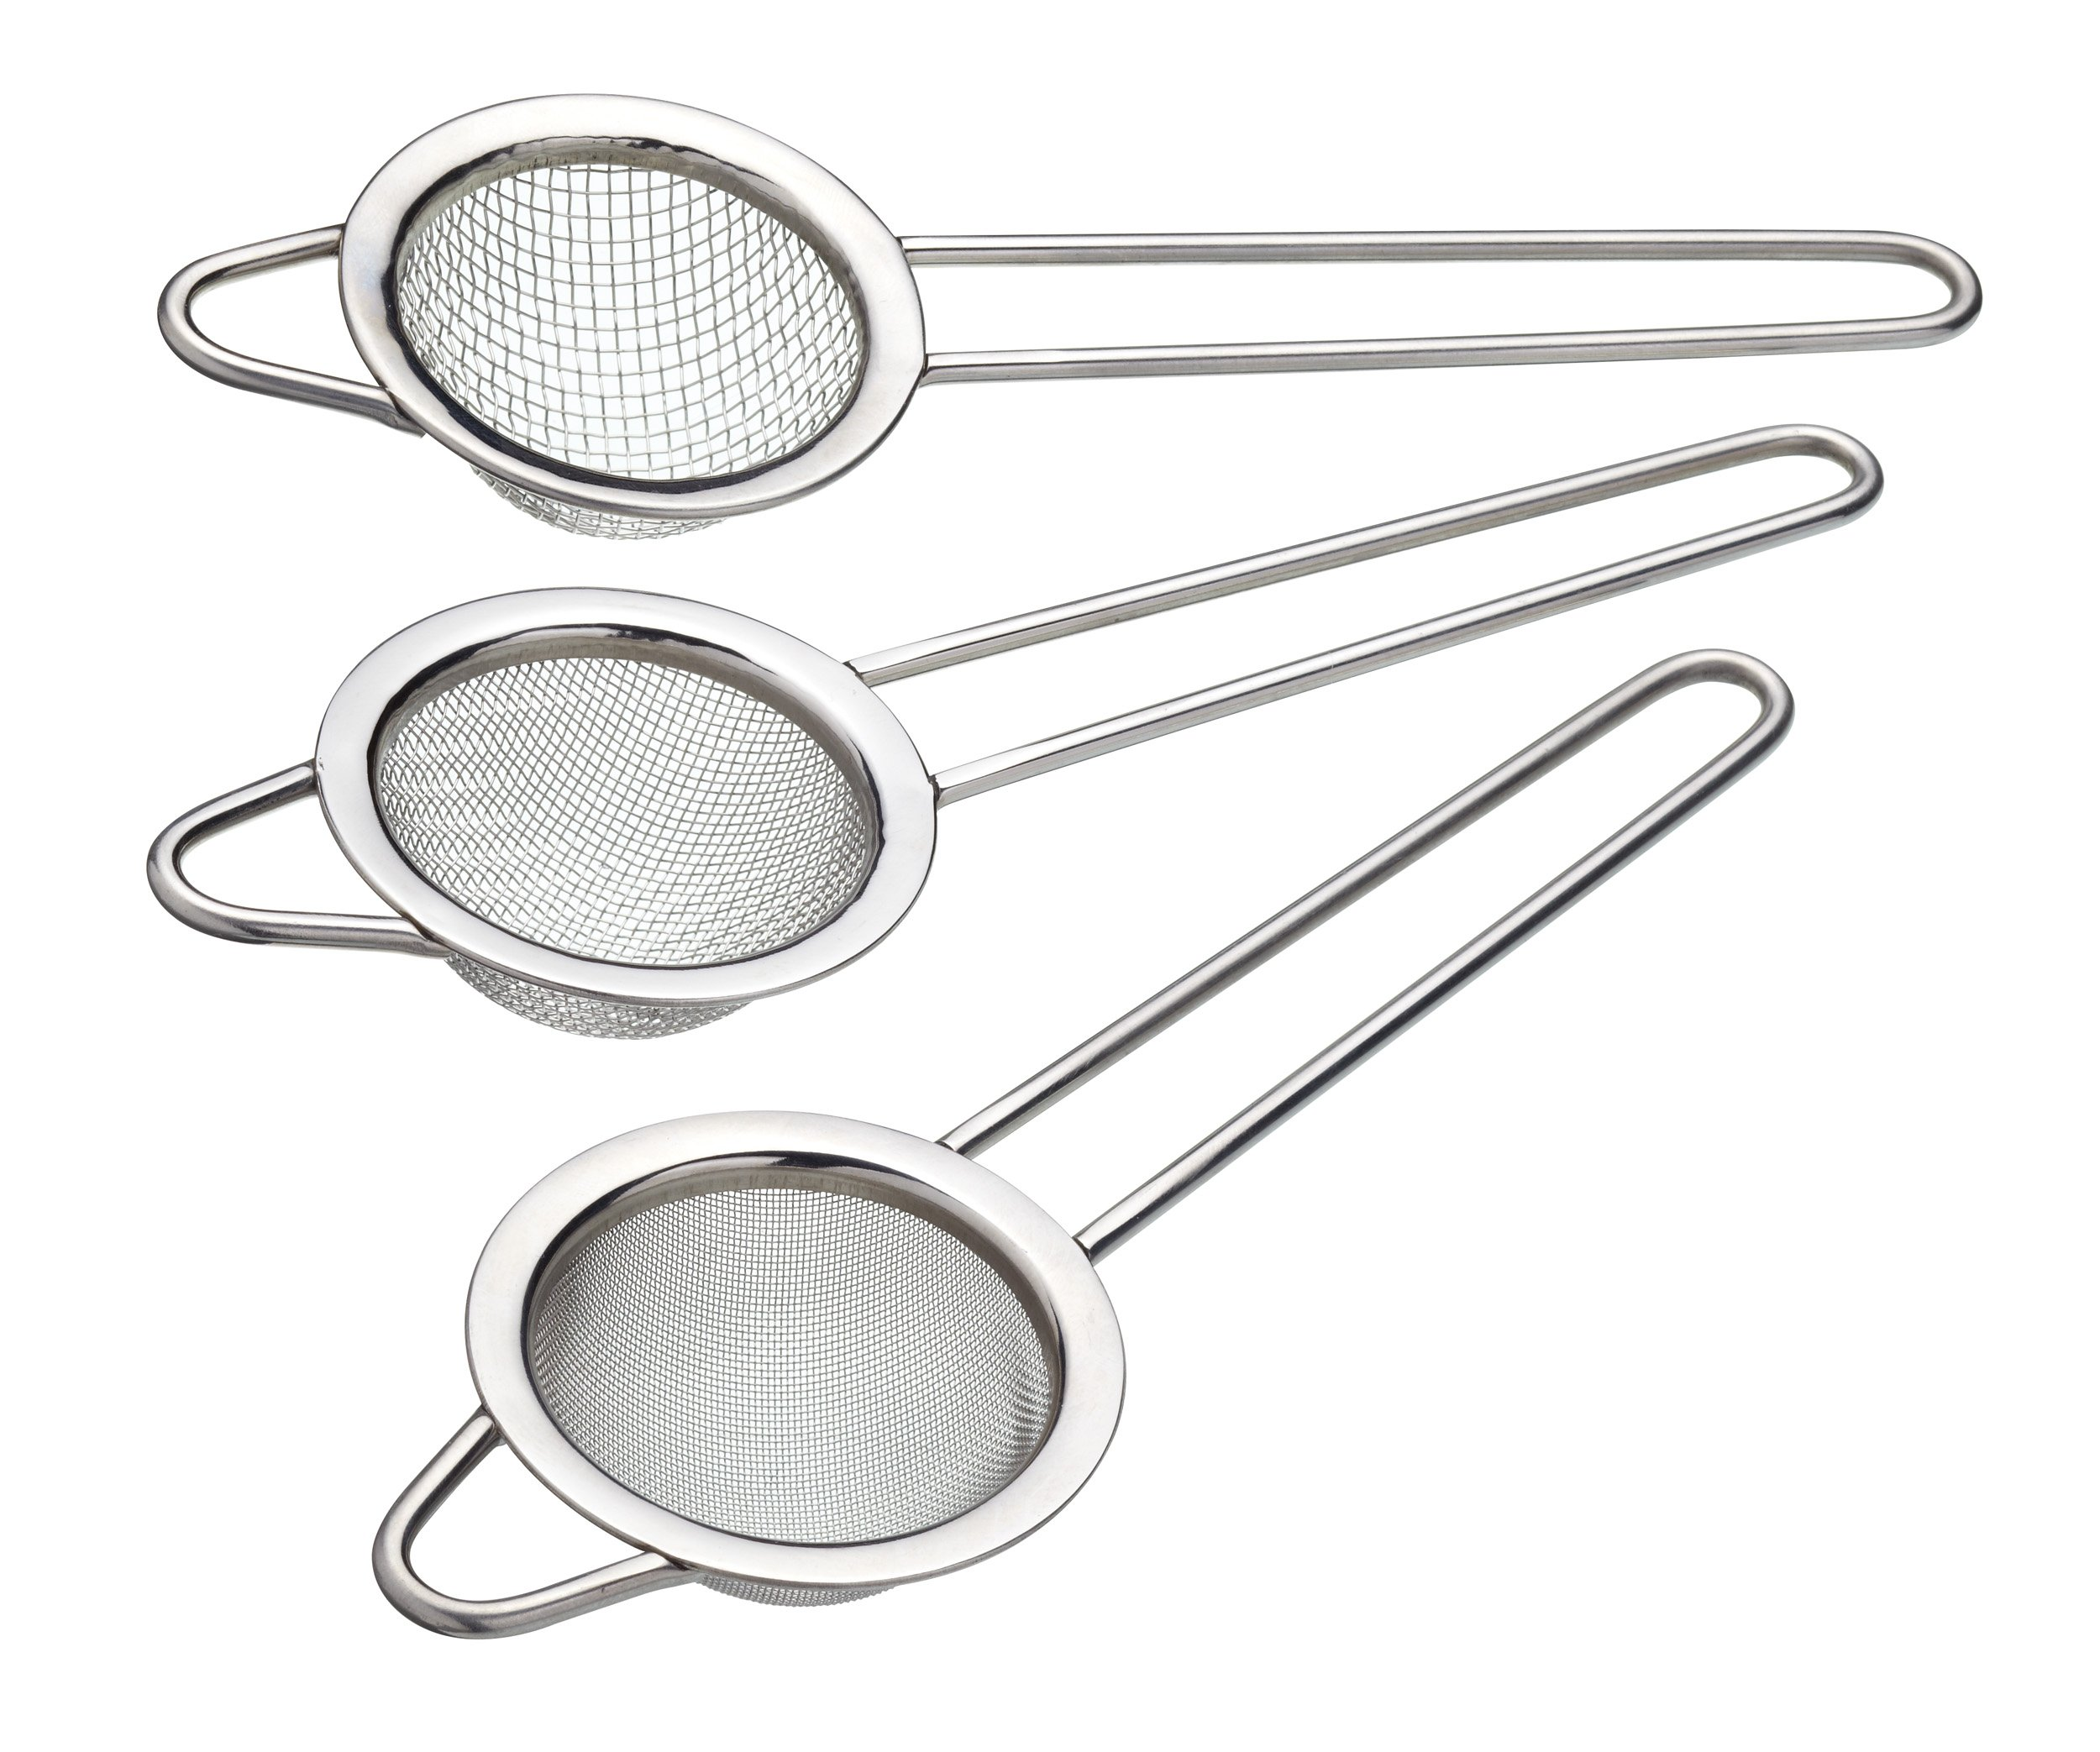 Sweetly Does It Kitchen Craft Sweetly Does It Stainless Steel Assorted Sieve Set